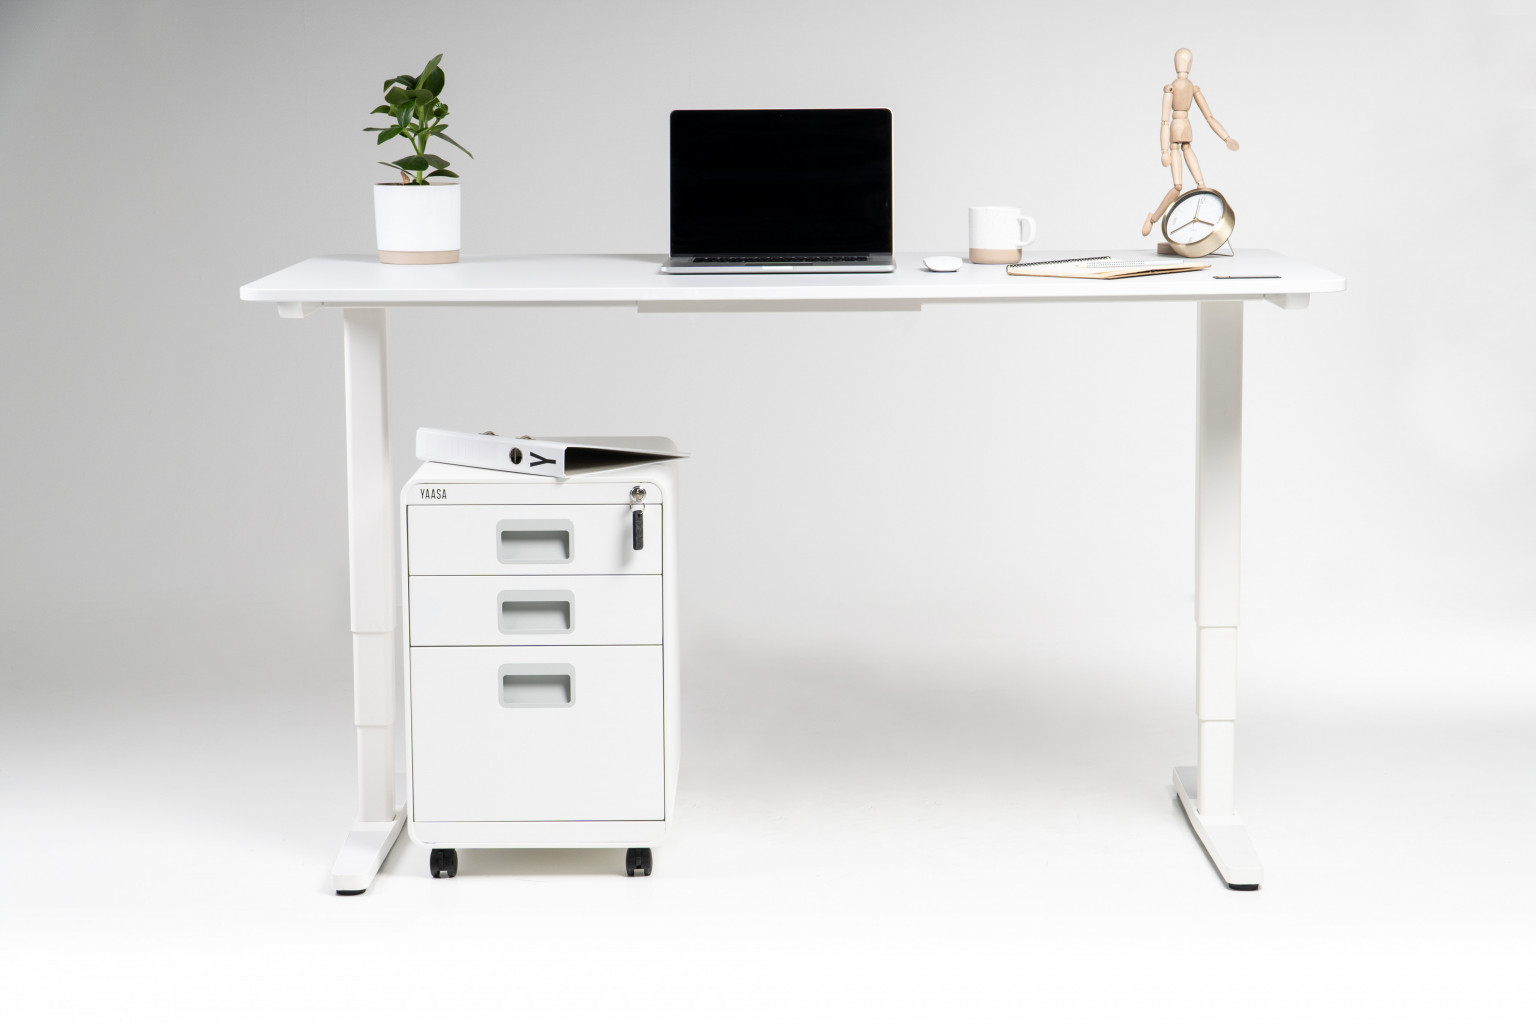 The Yaasa File Cabinet fits into every Home Office or Office Space due to its modern and clean Design.